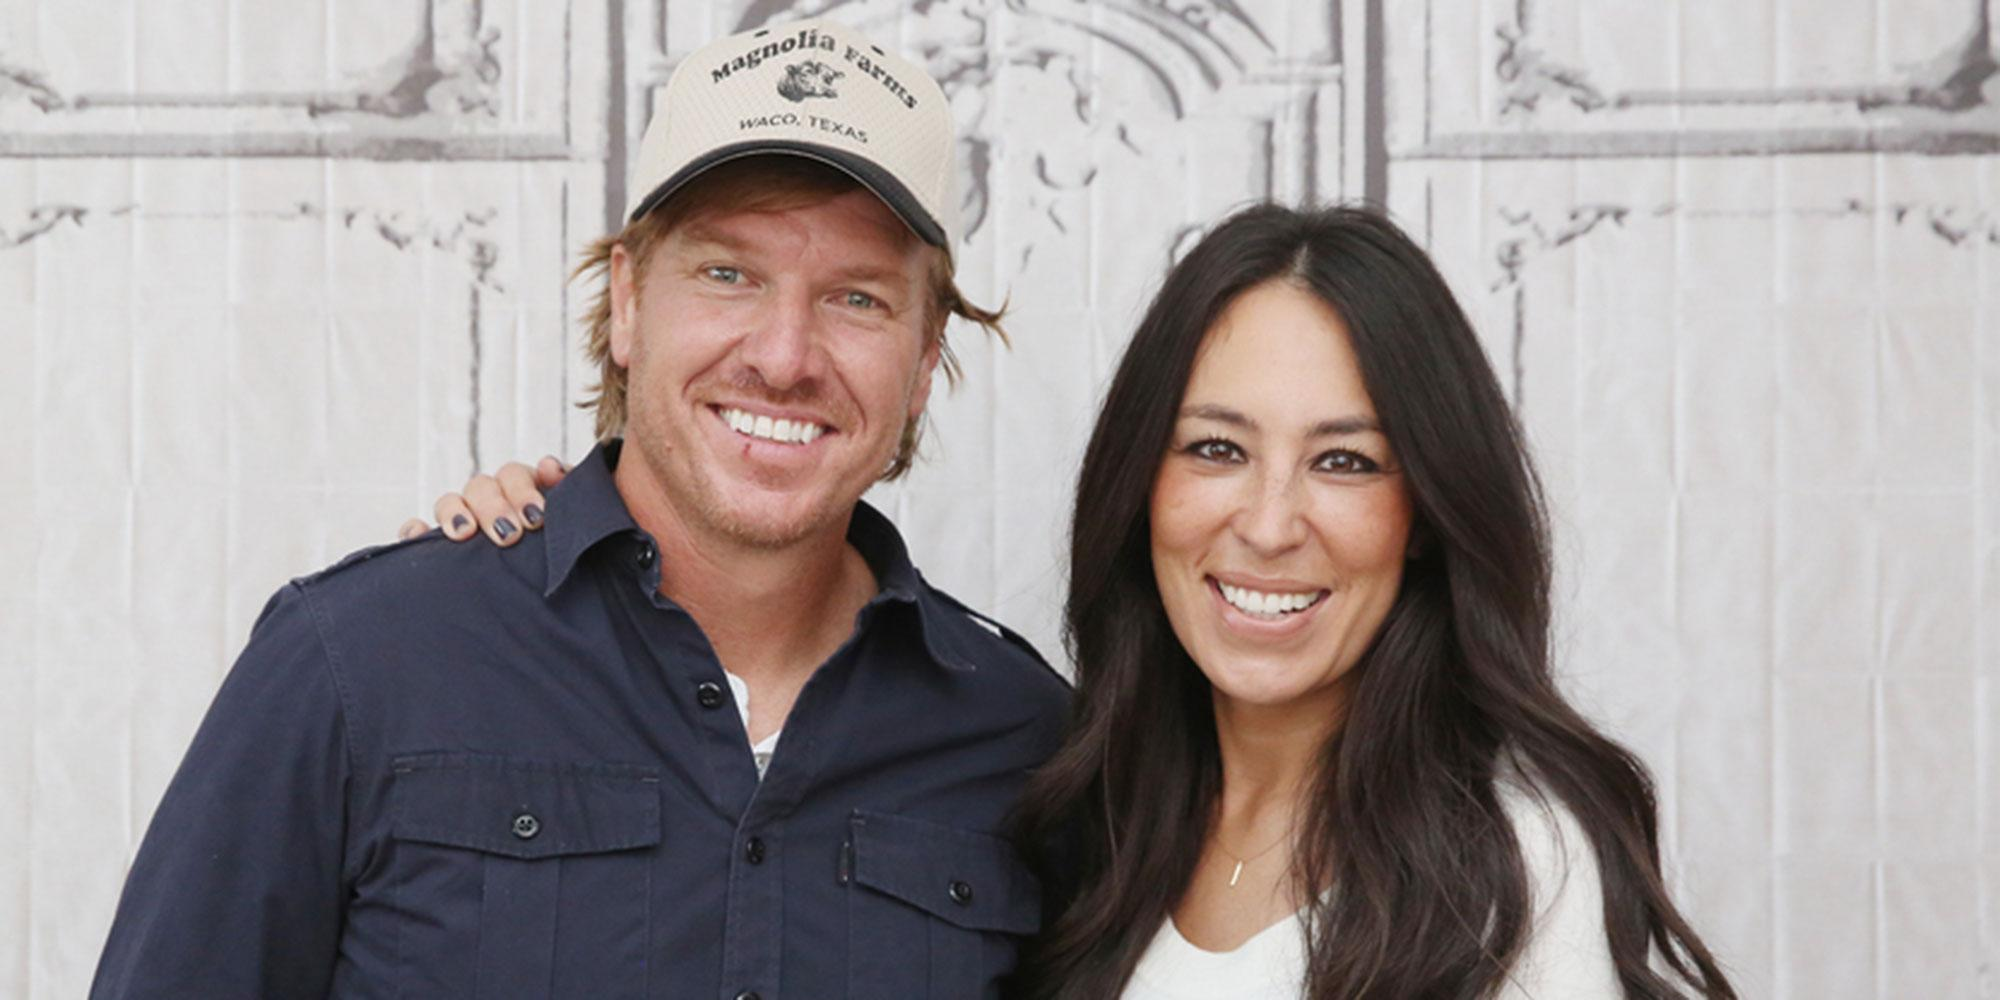 Chip And Joanna Gaines Might Leave Texas